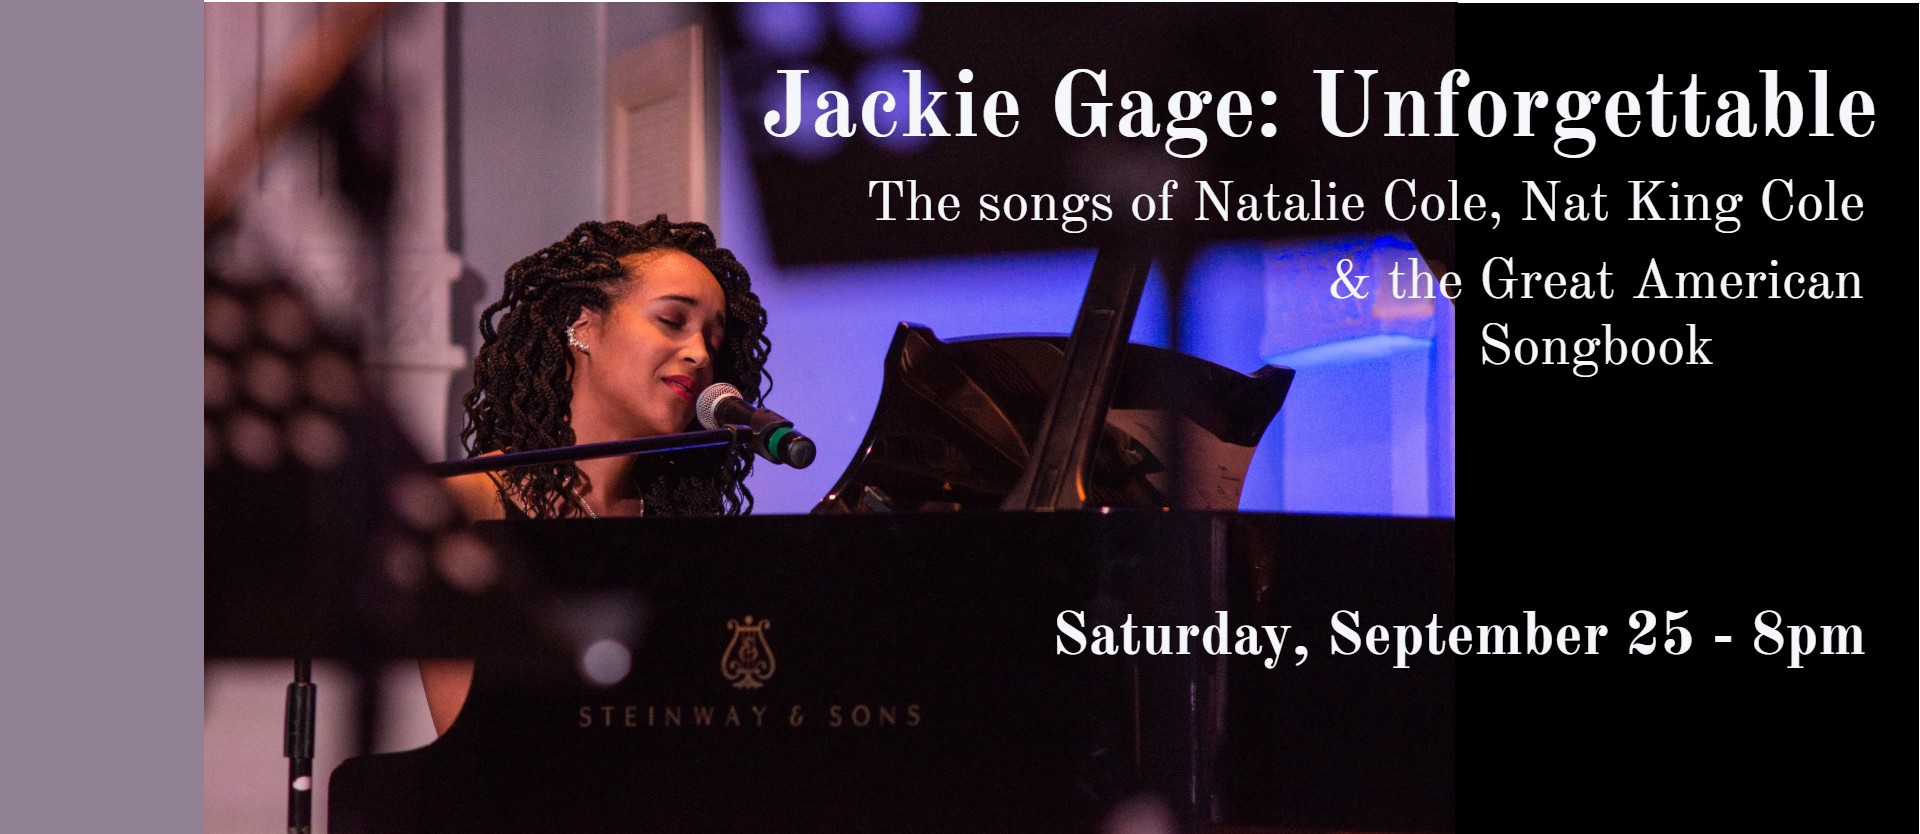 """Jackie Gage: """"Unforgettable"""" - The Songs of Natalie Cole, Nat King Cole and the Great American Songbook"""